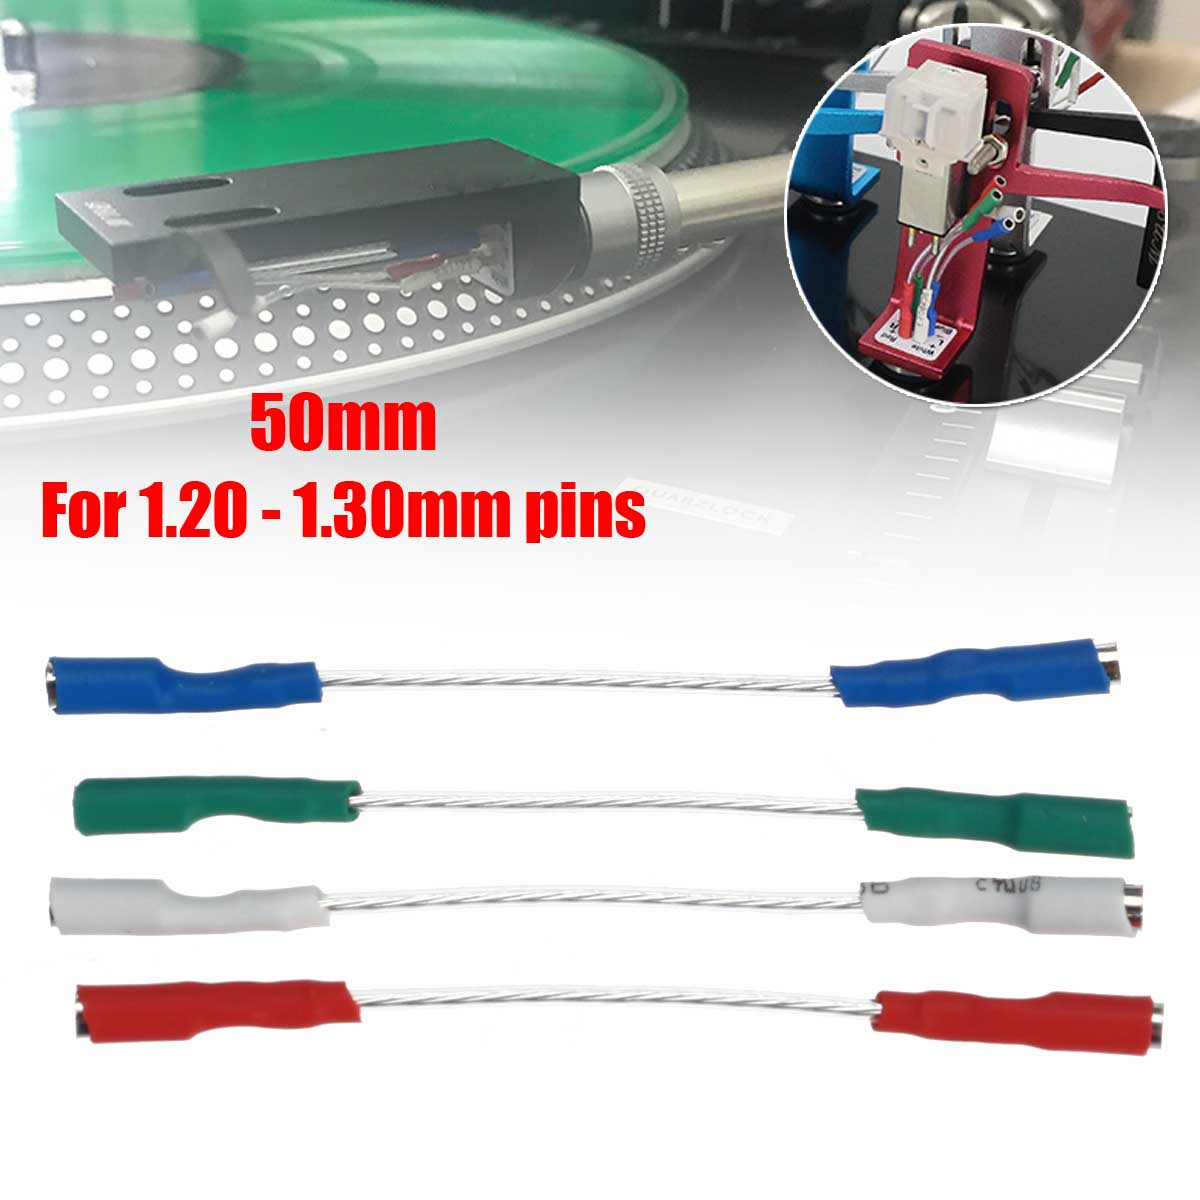 4Pcs 50mm 5N Pure Sliver Leads Header Wire Cable  Universal For 1.2-1.3mm Pins Turntable Phono Headshell4Pcs 50mm 5N Pure Sliver Leads Header Wire Cable  Universal For 1.2-1.3mm Pins Turntable Phono Headshell